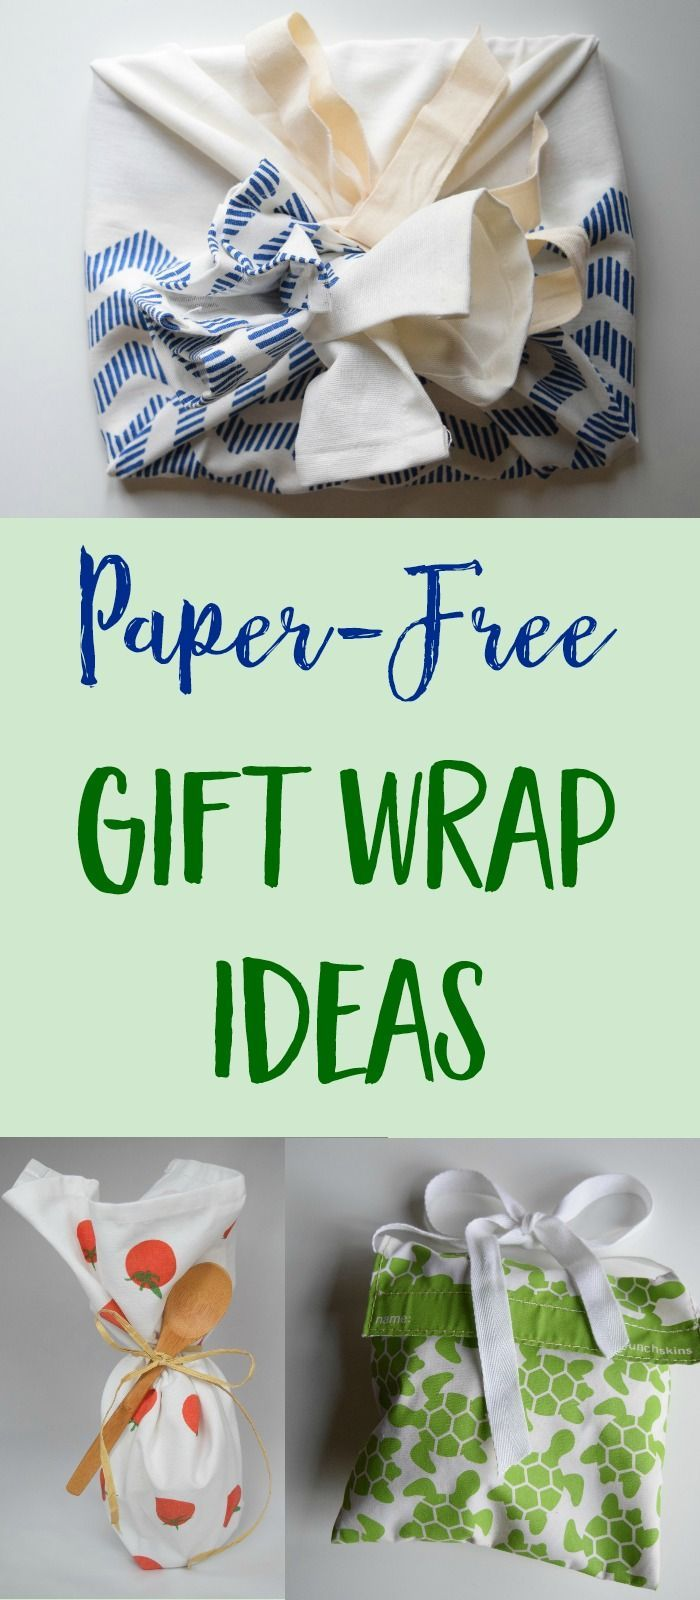 Unique gift wrapping ideas that are part of the gift wrapping unique gift wrapping ideas that are part of the gift wrapping ideas wrapping papers and creative gifts negle Gallery